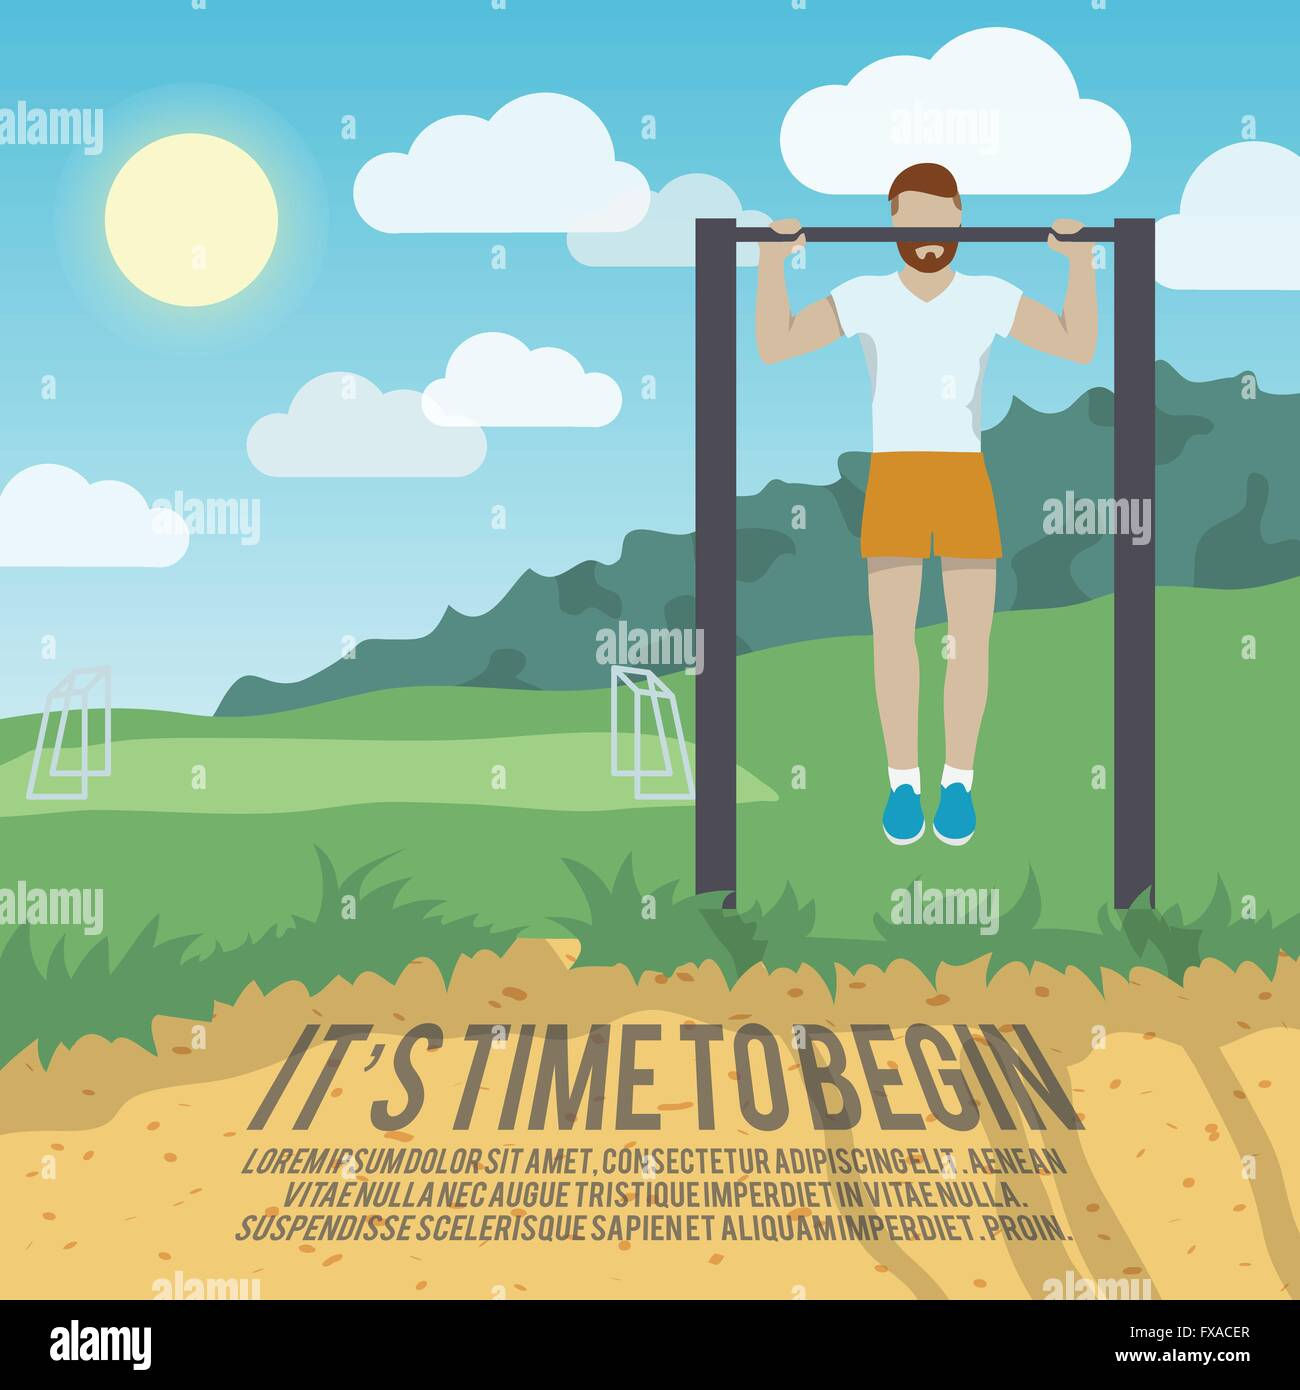 Man on pull-up bar fitness poster - Stock Image